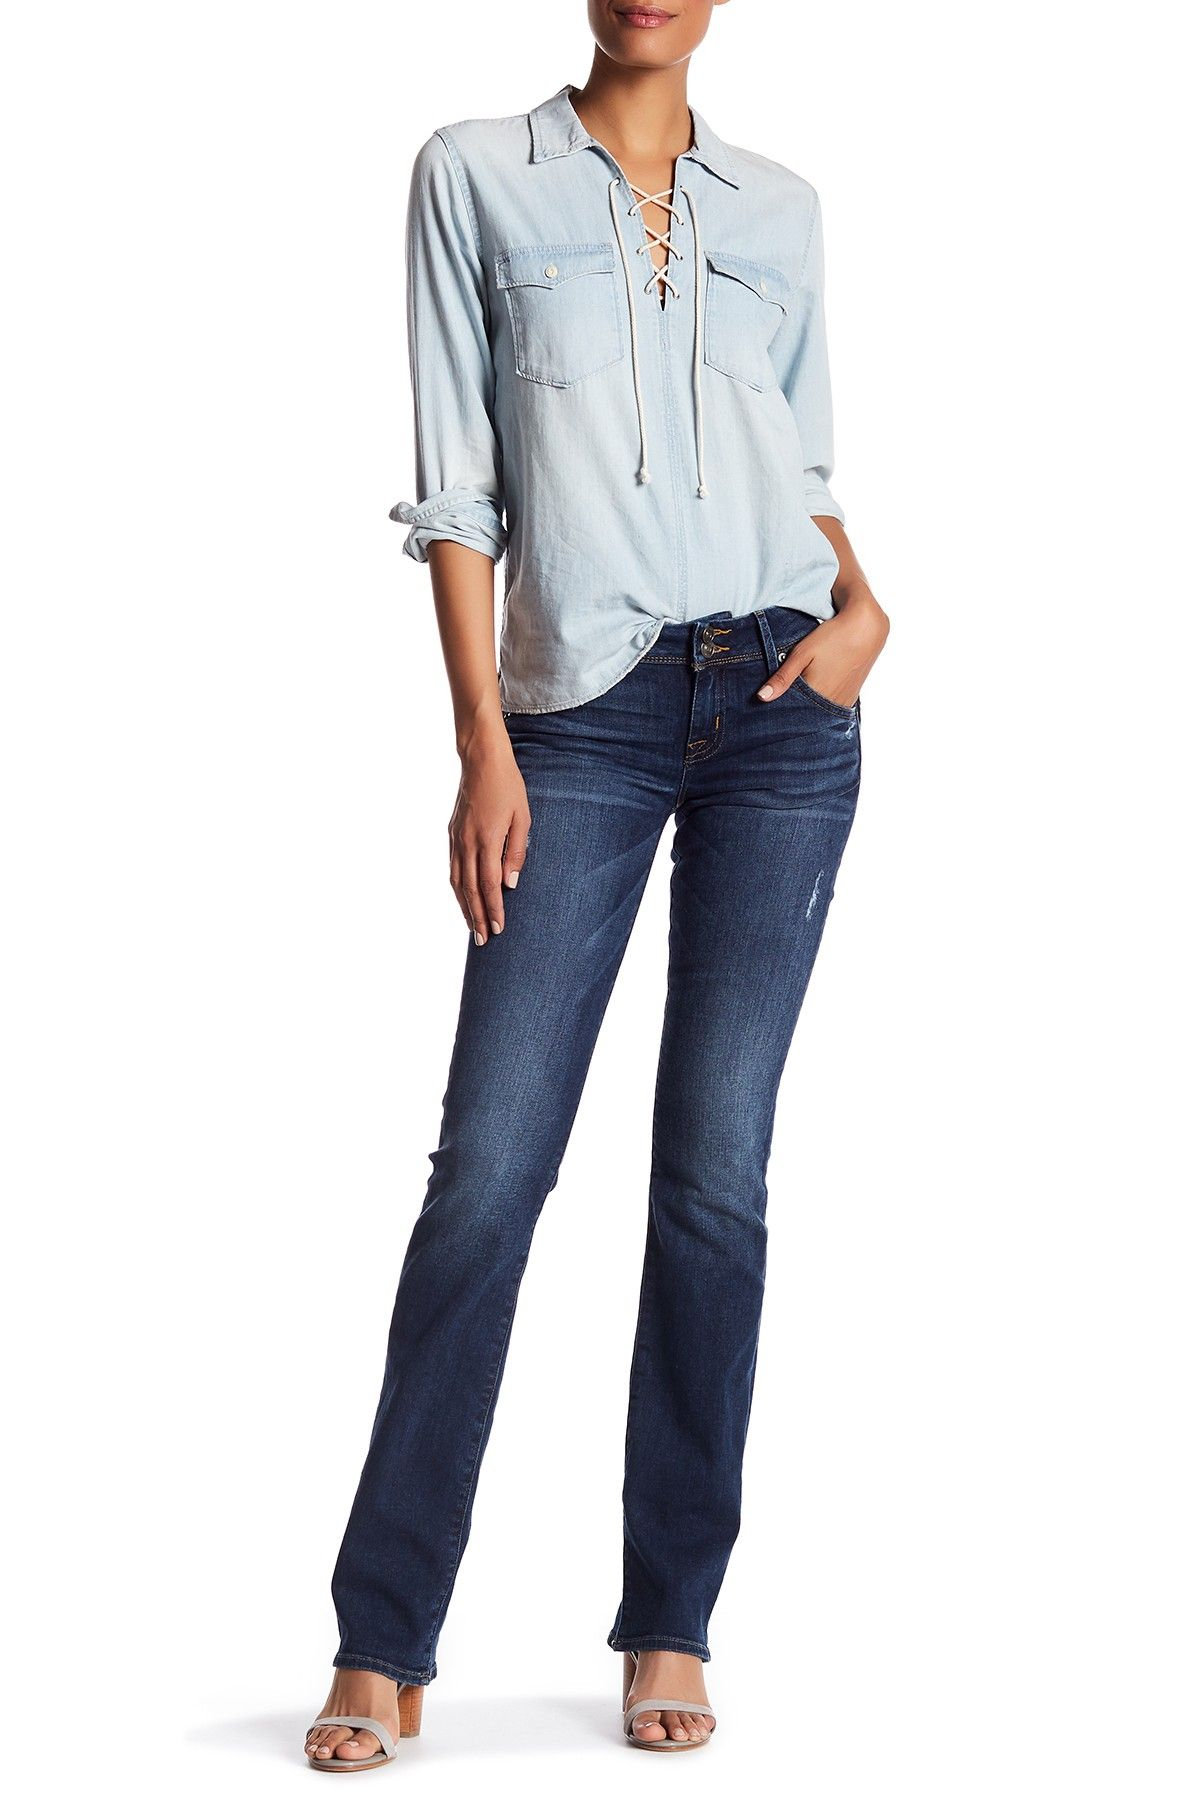 926c62342b99 HUDSON Jeans | Beth Baby Bootcut Jeans | Spring Summer | Hudson ...